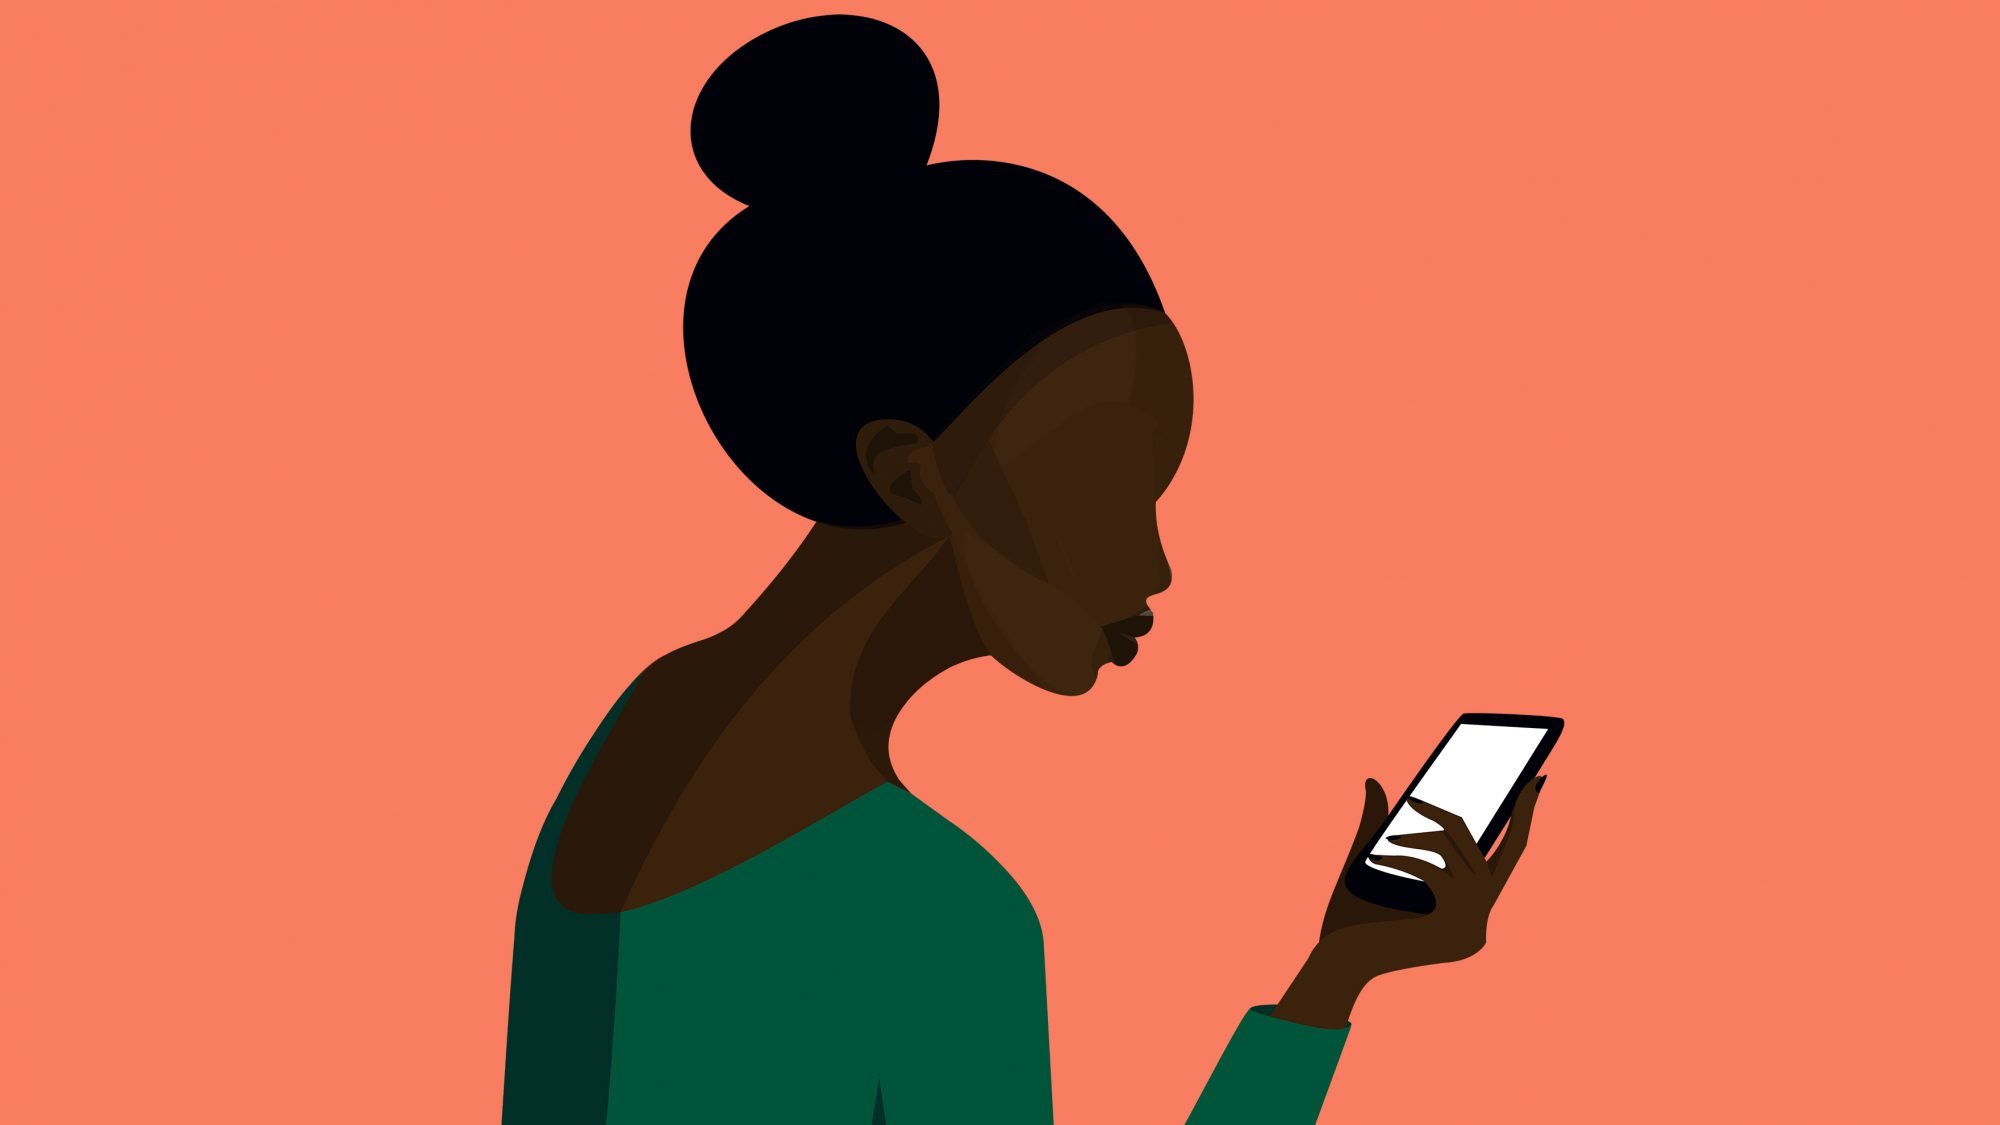 tech-neck: illustration of woman looking down at her phone